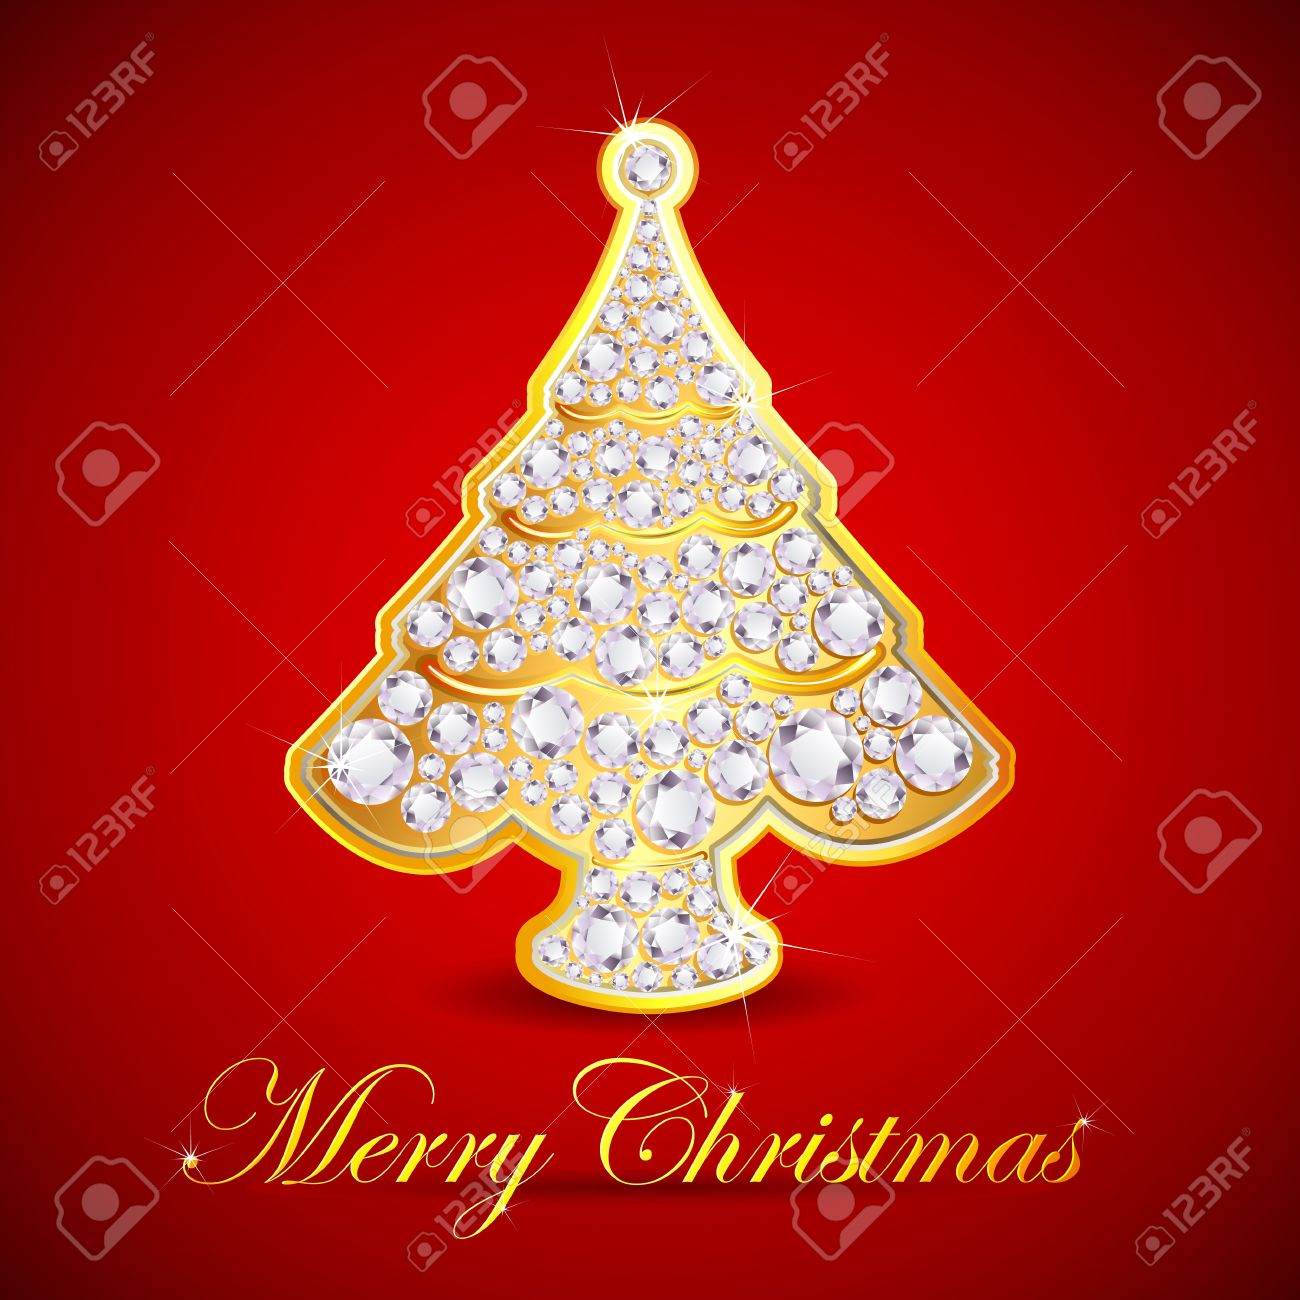 Illustration Of Christmas Tree Made Of Gold And Diamond